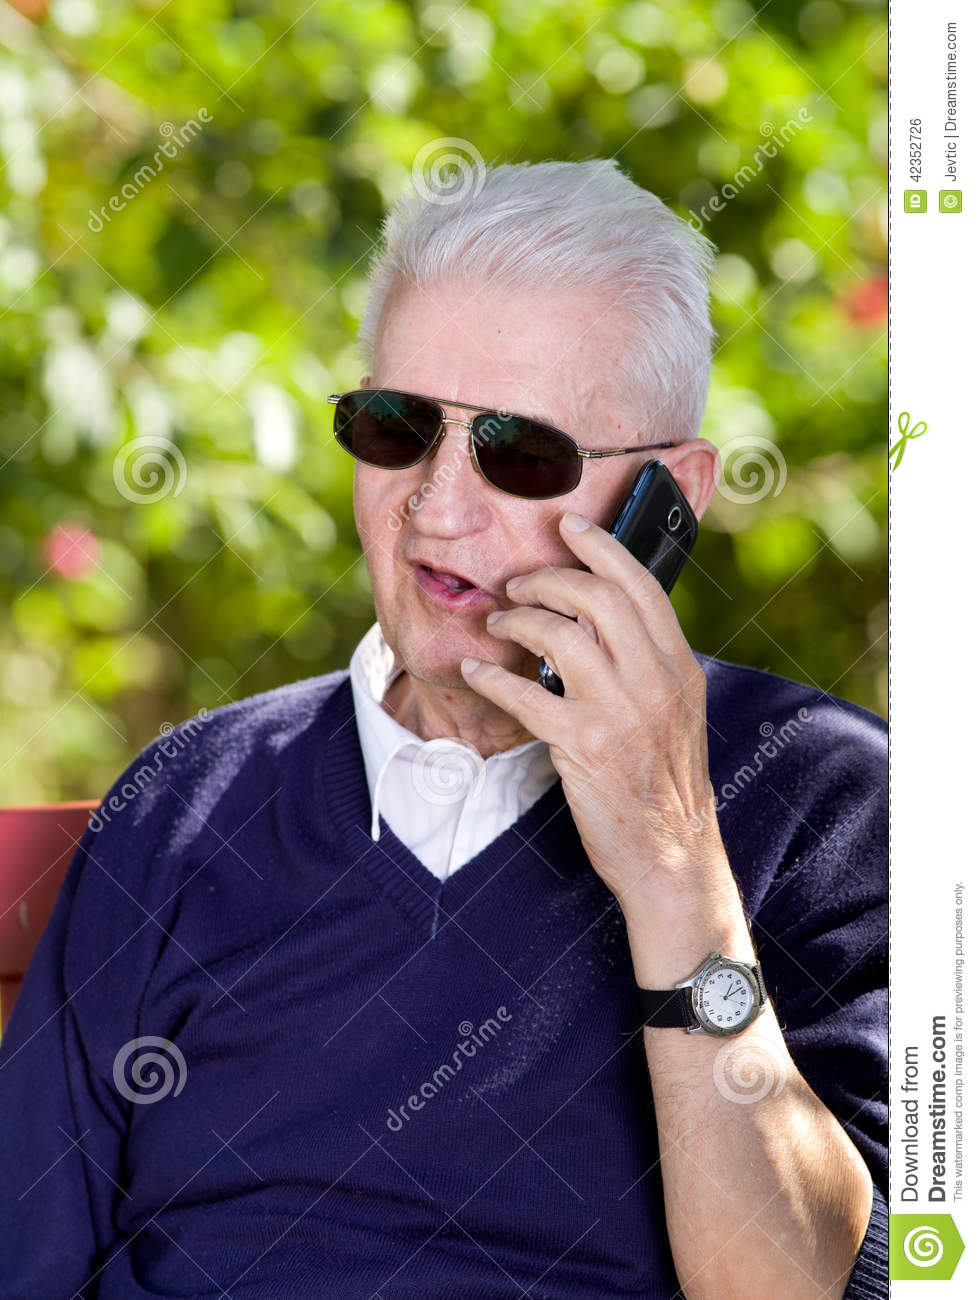 Man On Cell Phone : Old man with cellphone stock photo image